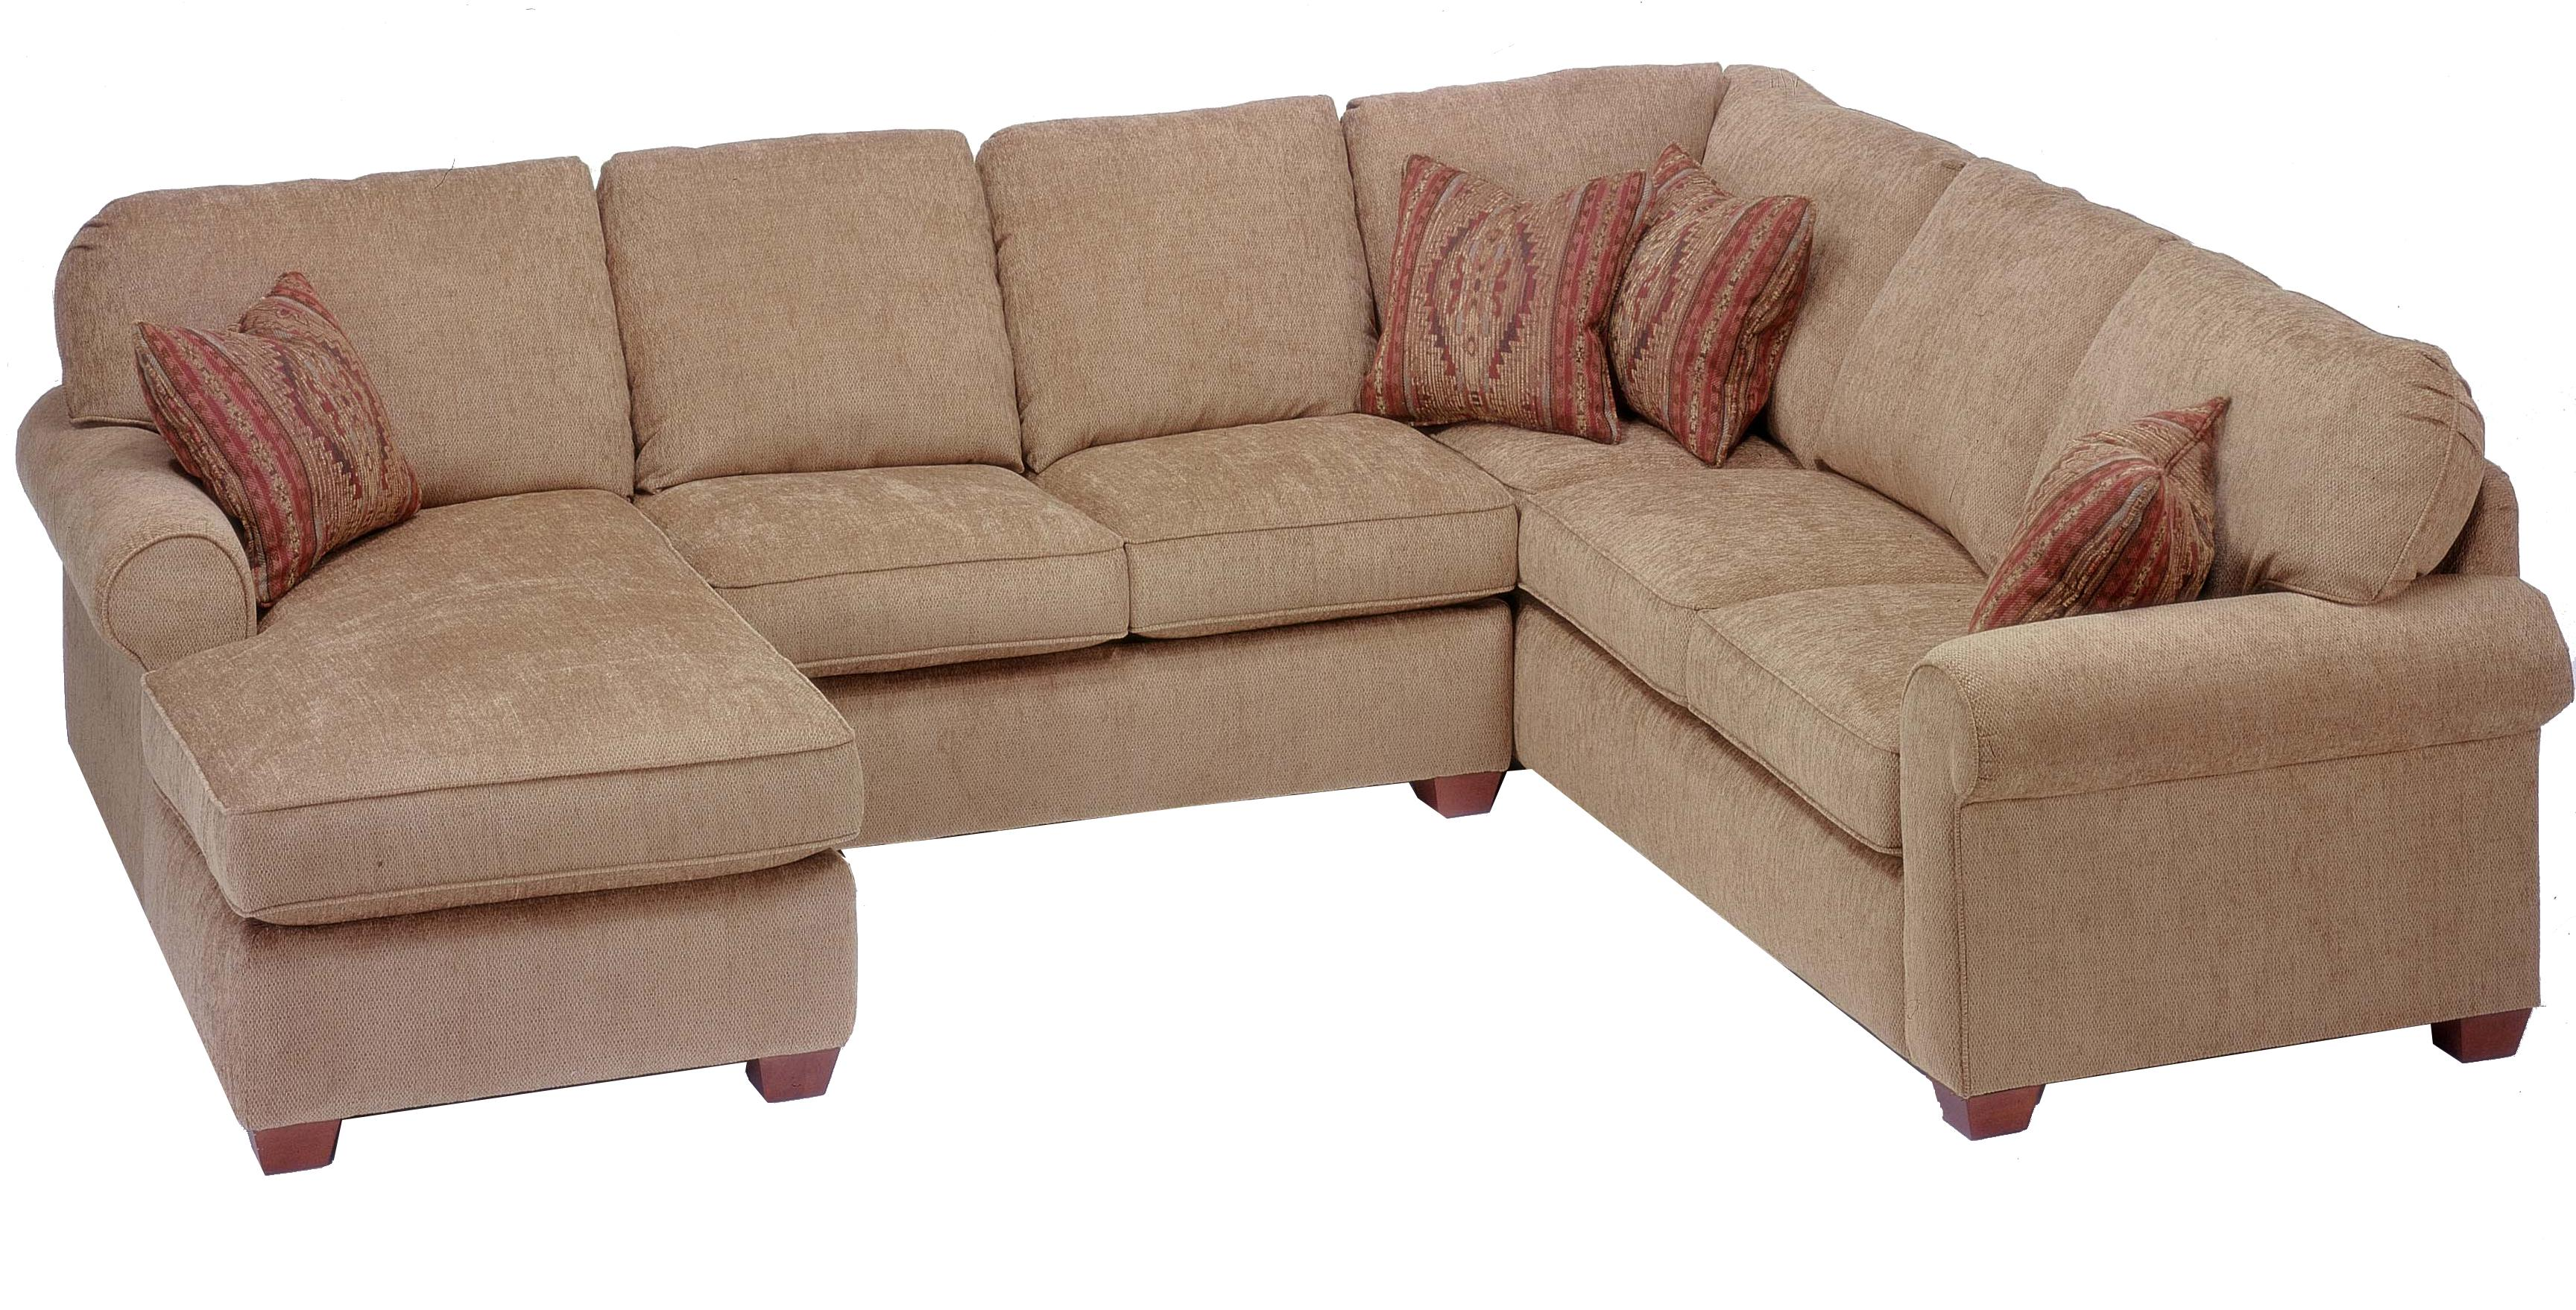 broyhill sofa prices how to stop puppy getting on flexsteel thornton 3 piece sectional with chaise | conlin ...